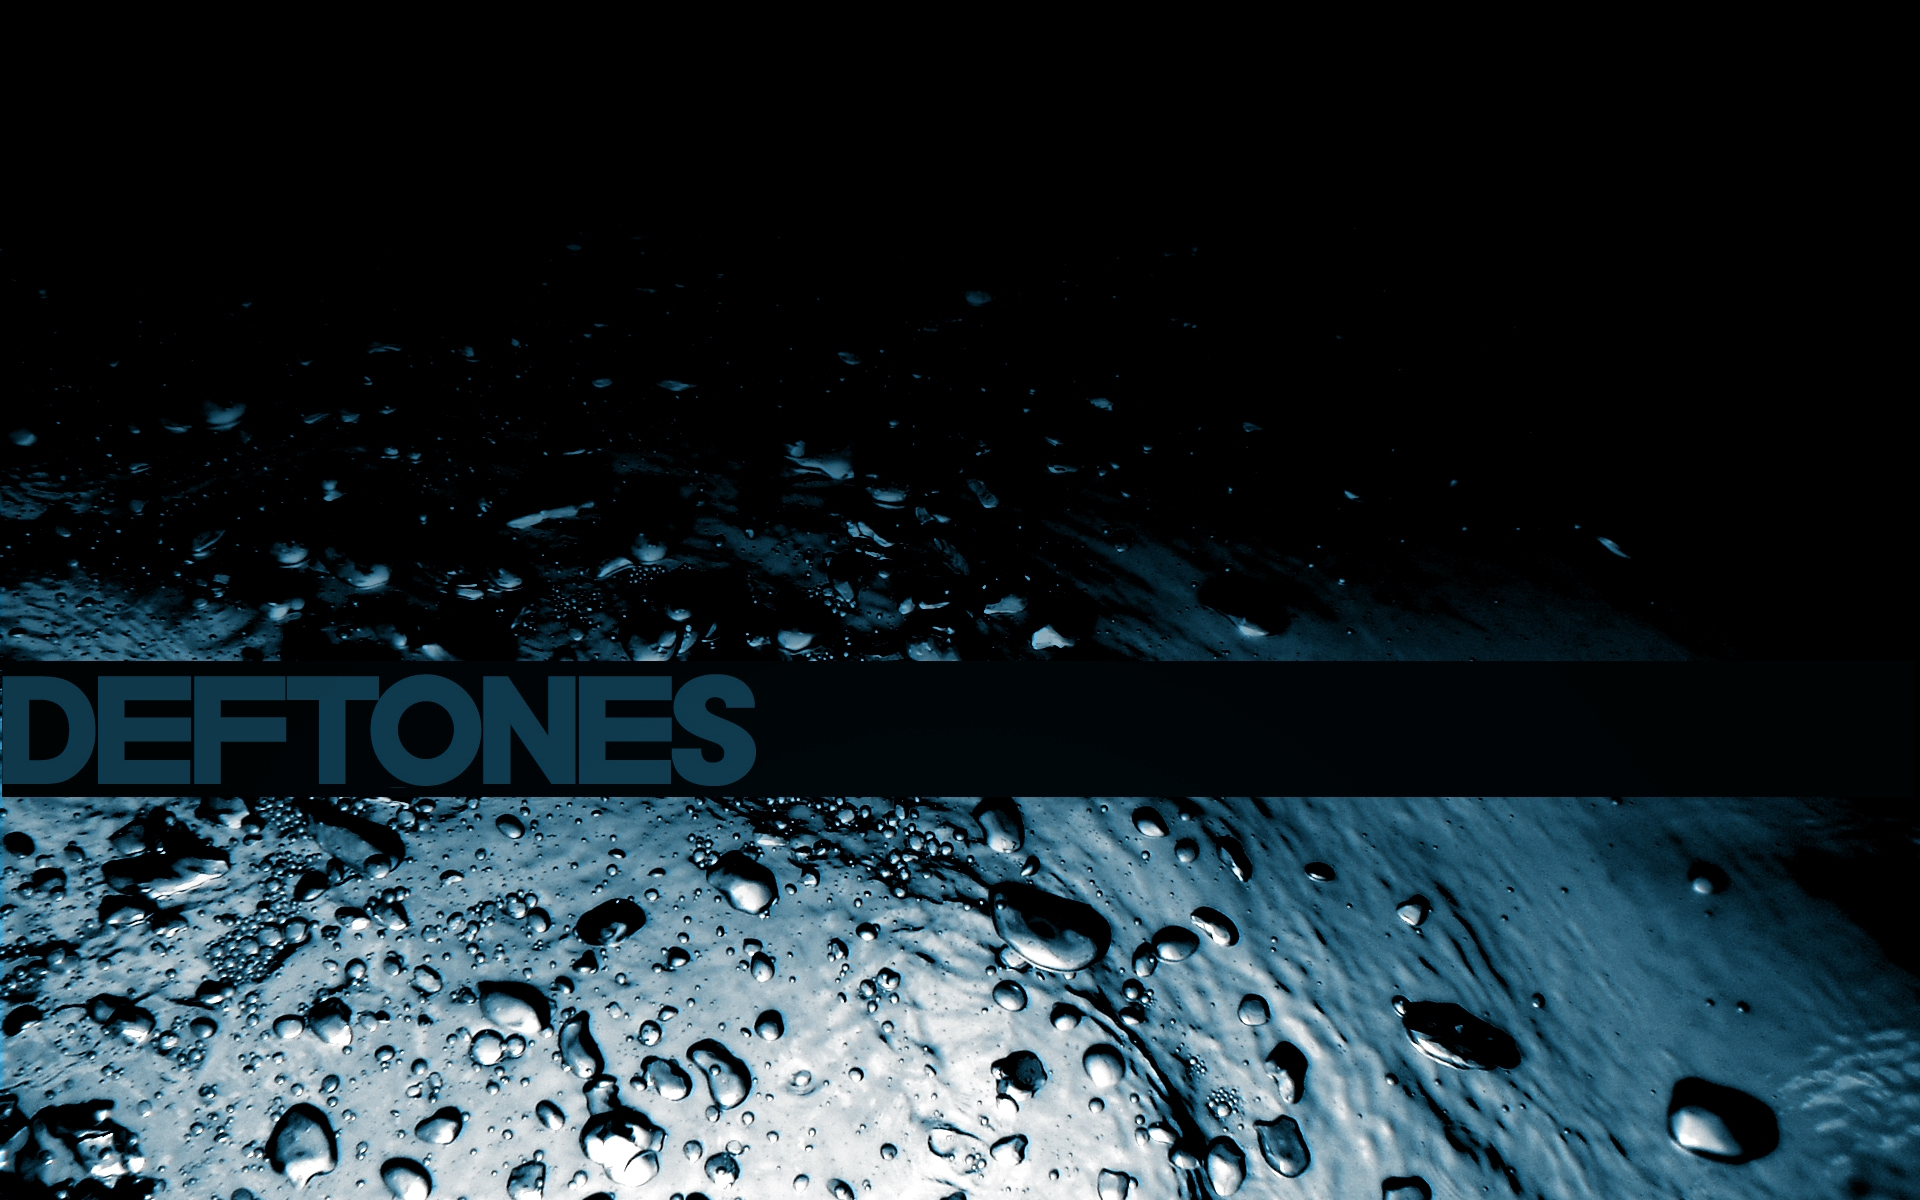 Deftones HD wallpaper 1920x1200